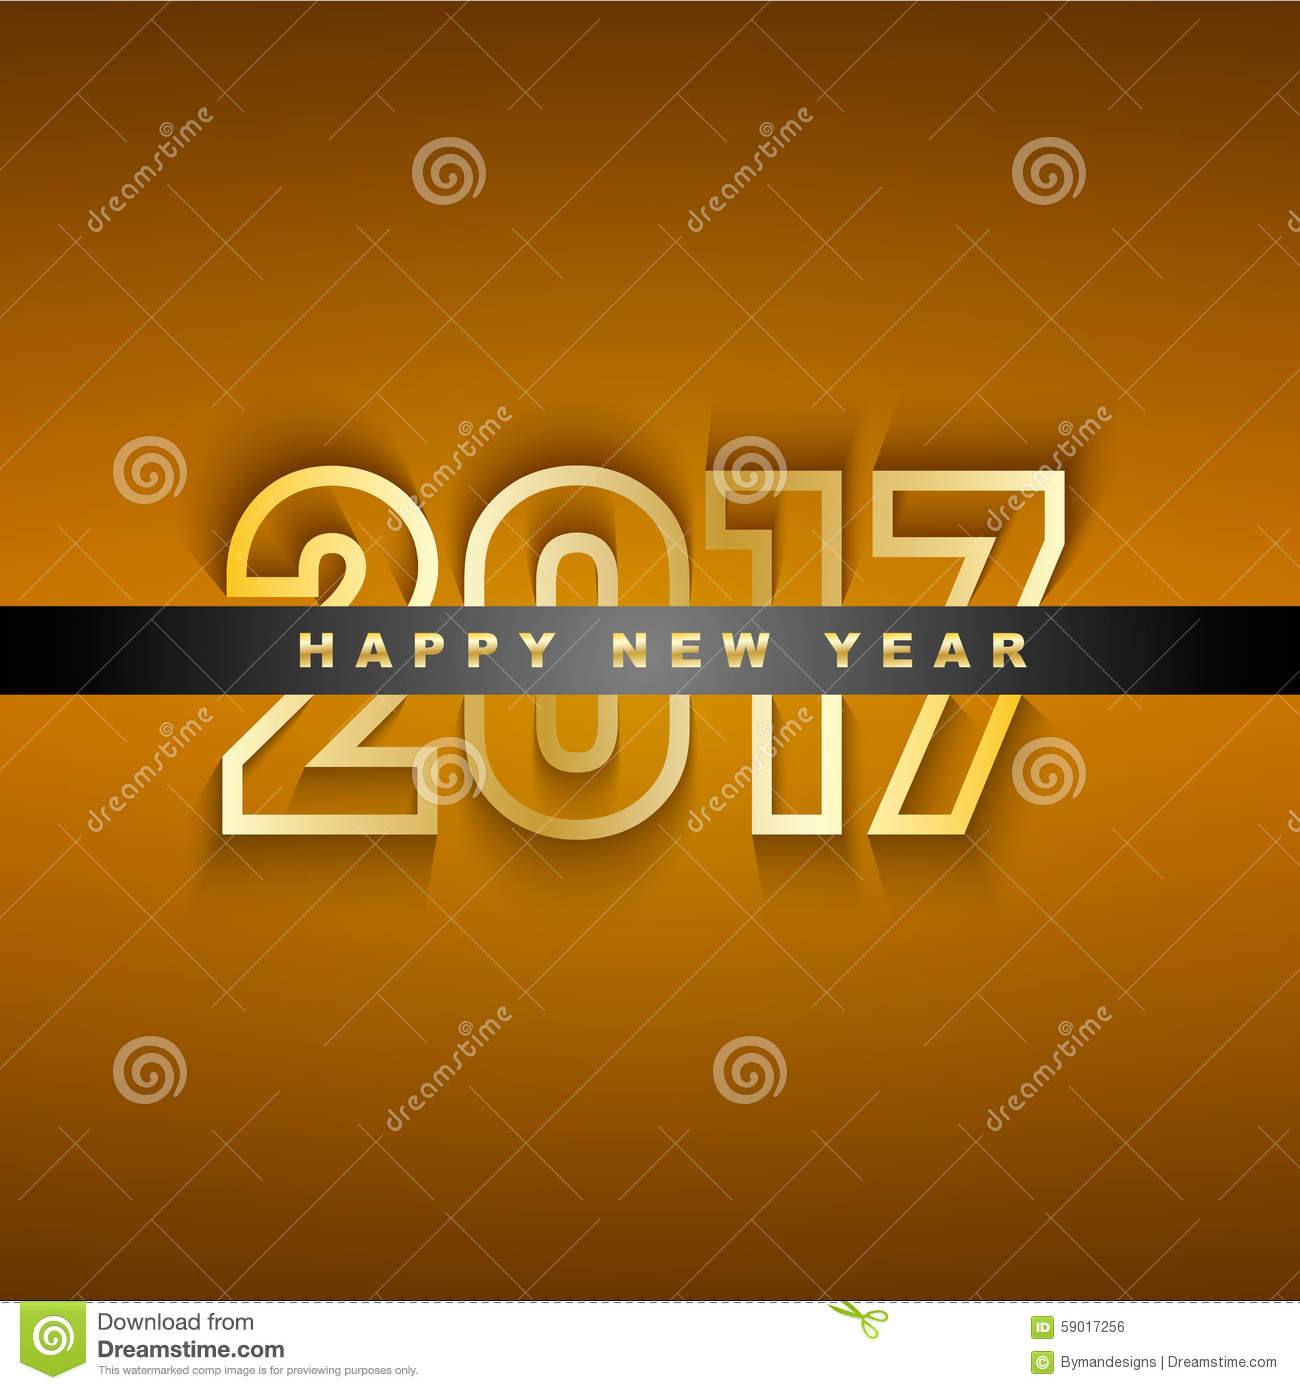 Golden 2017 new year greeting card stock vector illustration of golden 2017 new year greeting card kristyandbryce Choice Image